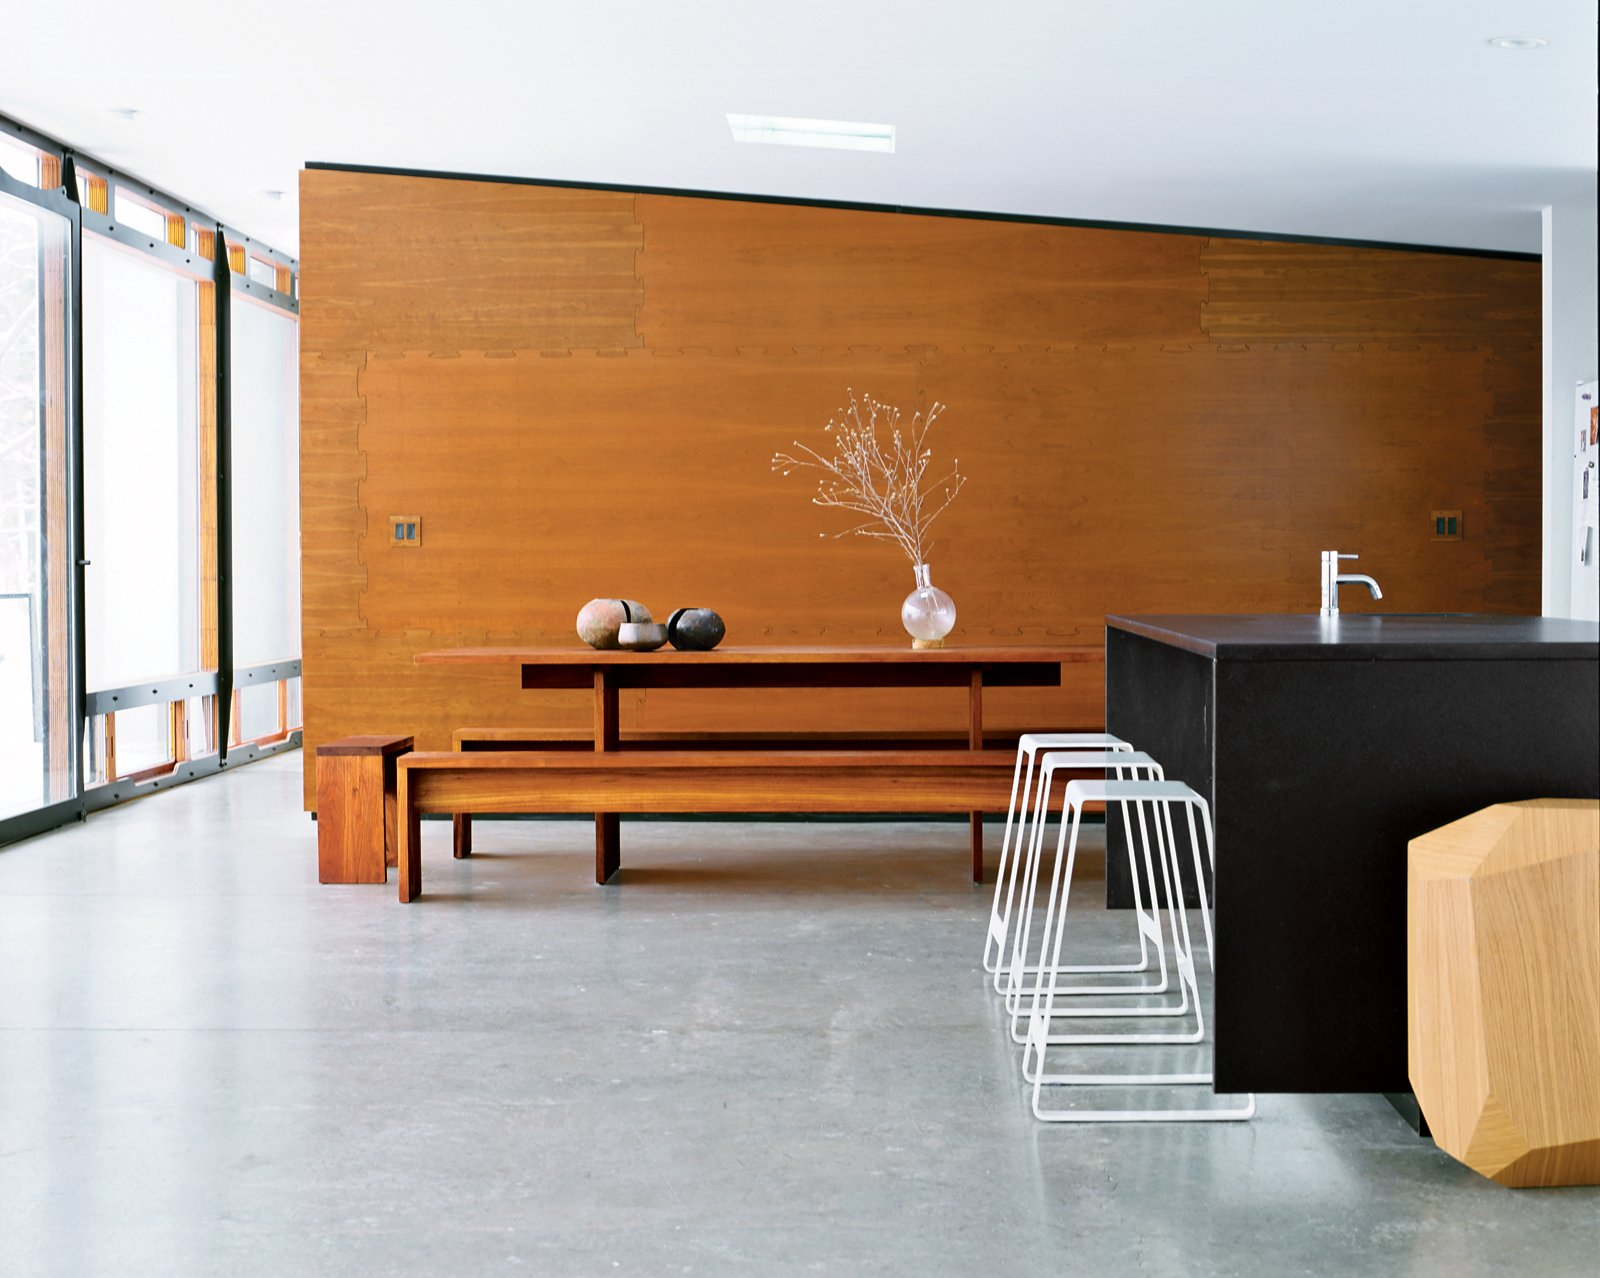 The table in the dining area was found in Venice, California, and the geometric table is a prototype by Arik Levy. Tagged: Dining Room, Bench, and Table.  Photo 5 of 12 in A Hybrid Prefab Home in Upstate New York from Interior Designers Speak: 18 Common Design Mistakes to Avoid